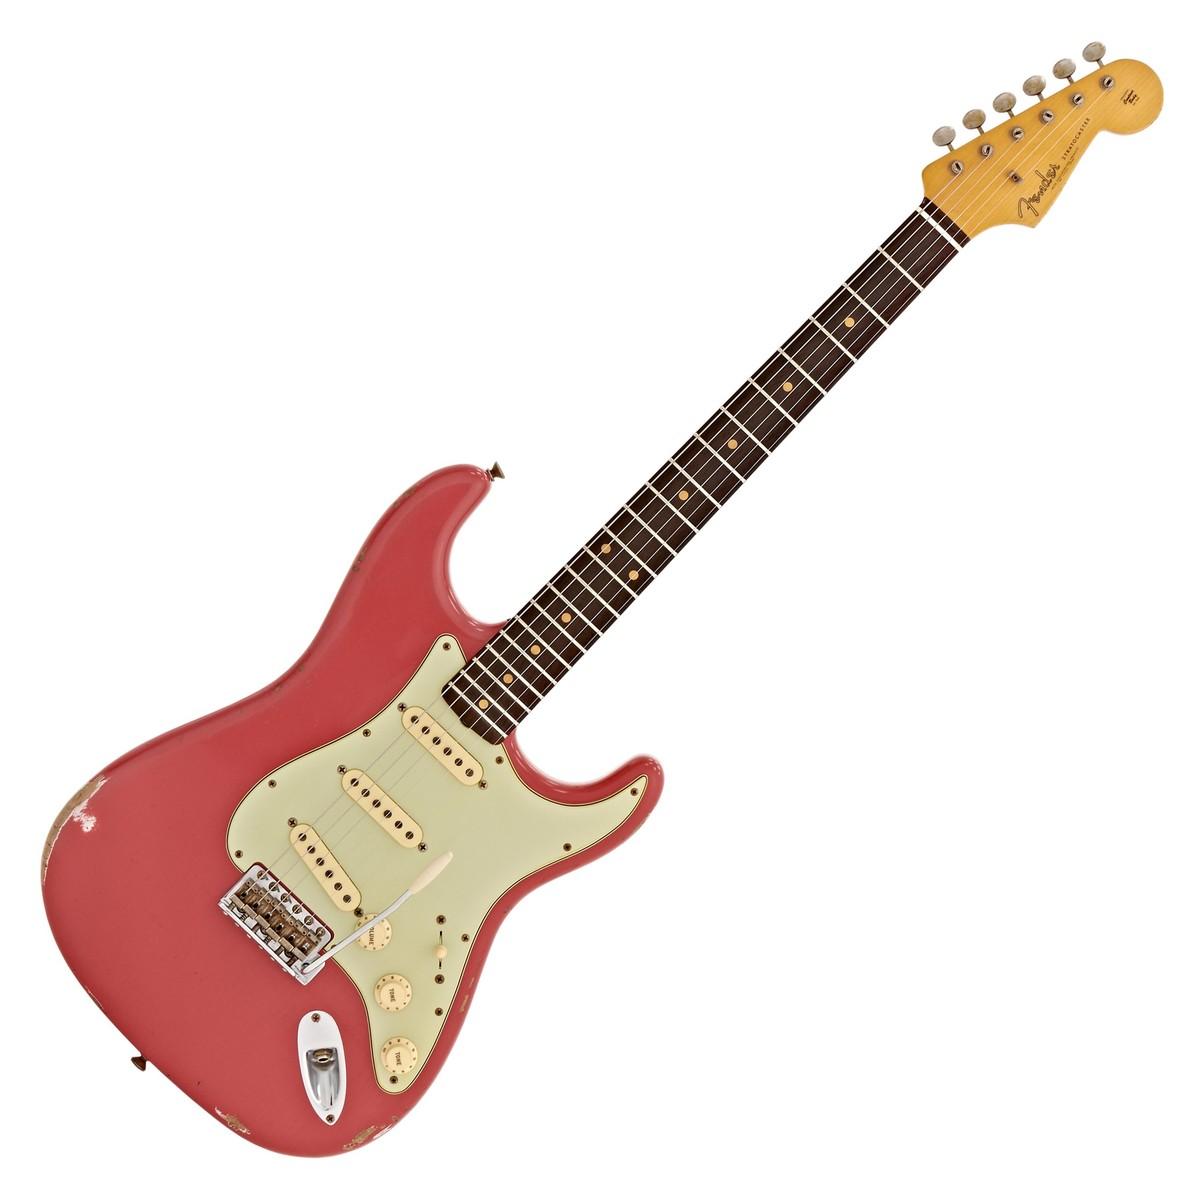 fender custom shop 1961 relic stratocaster fiesta red cz528000 at gear4music